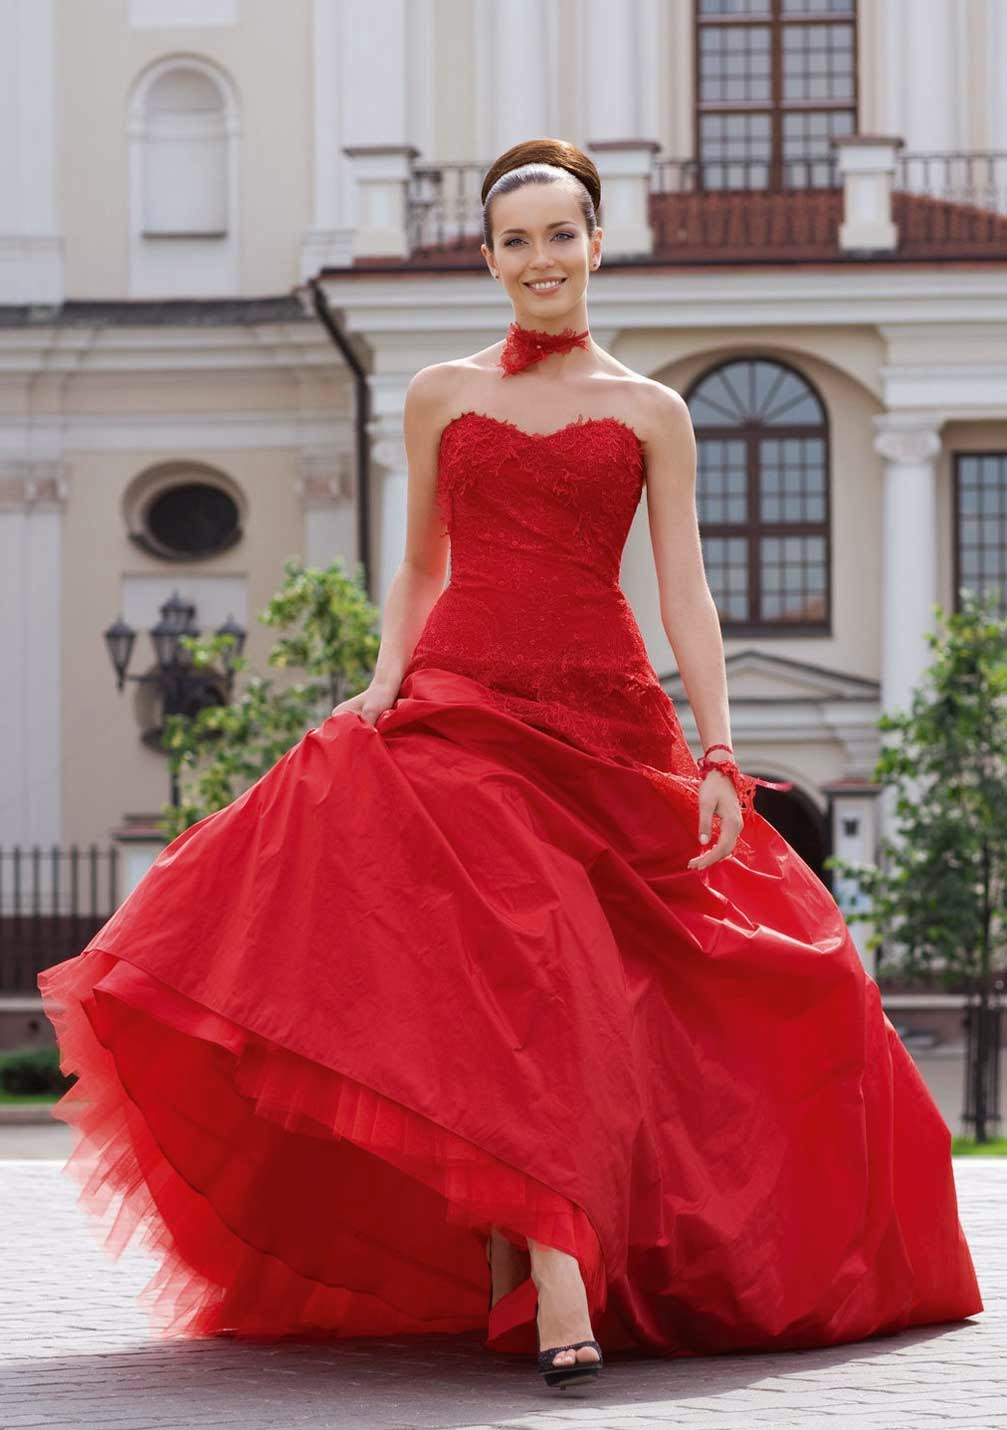 Red Wedding Dresses Style Images Design Ideas Photos HD